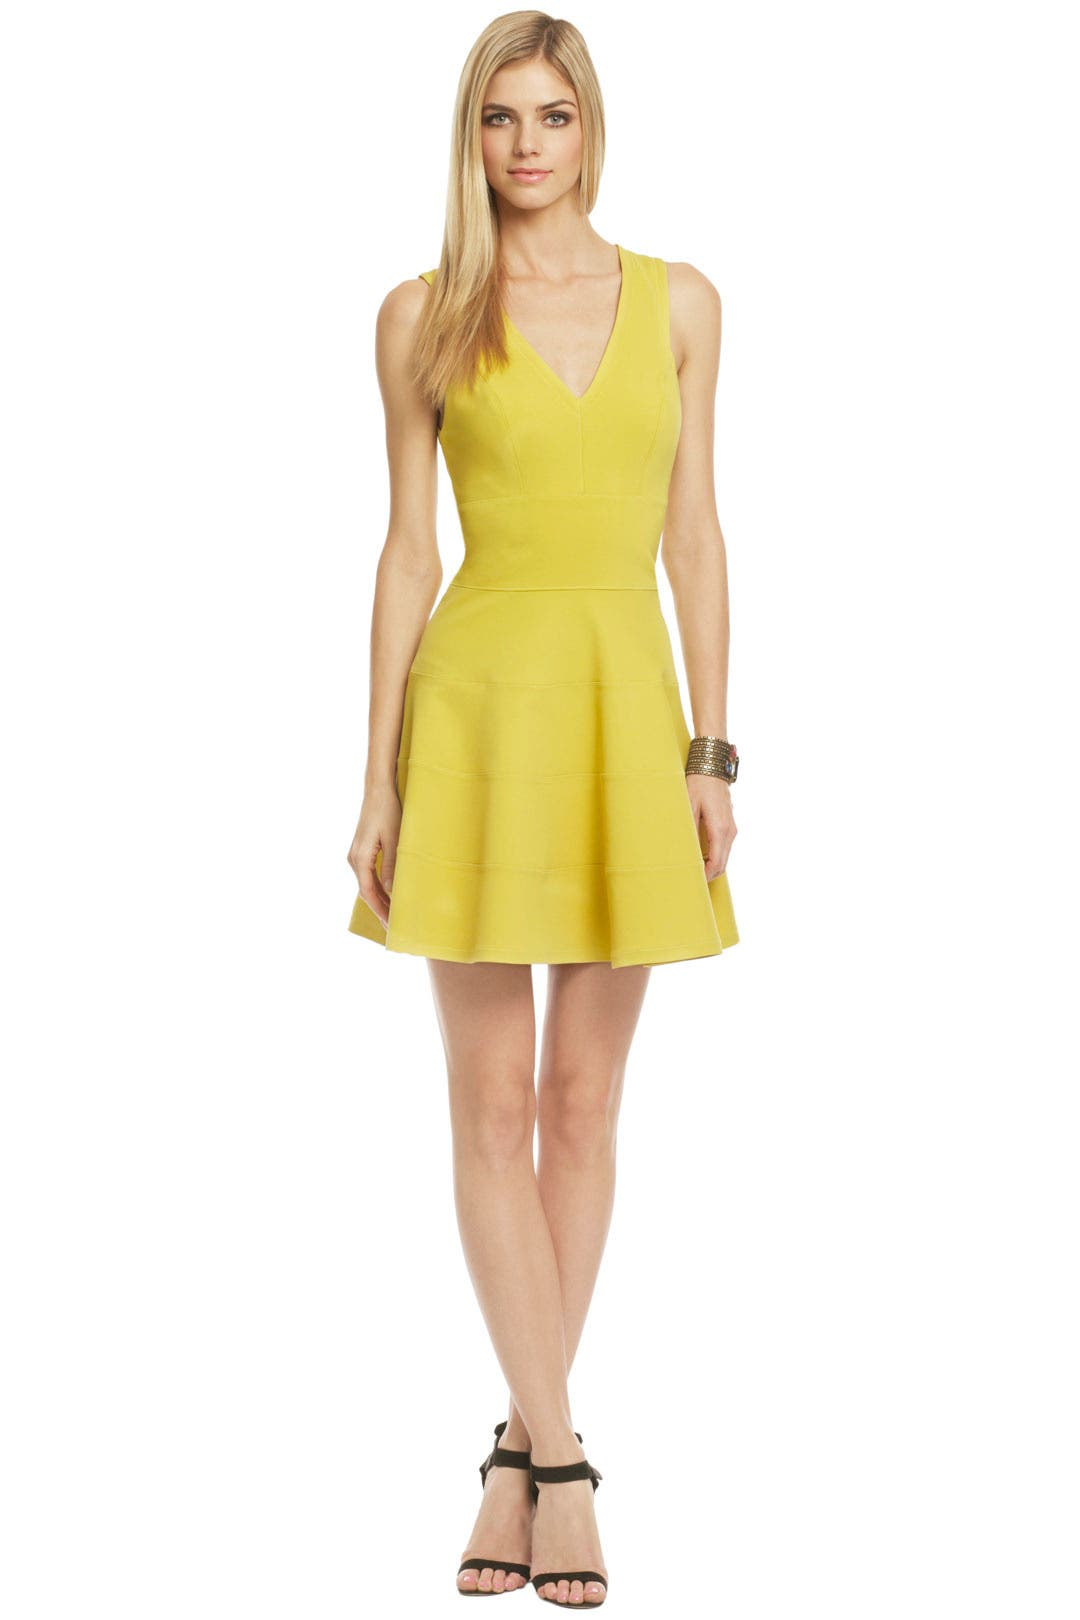 Sour Lemonade Dress by Robert Rodriguez Collection